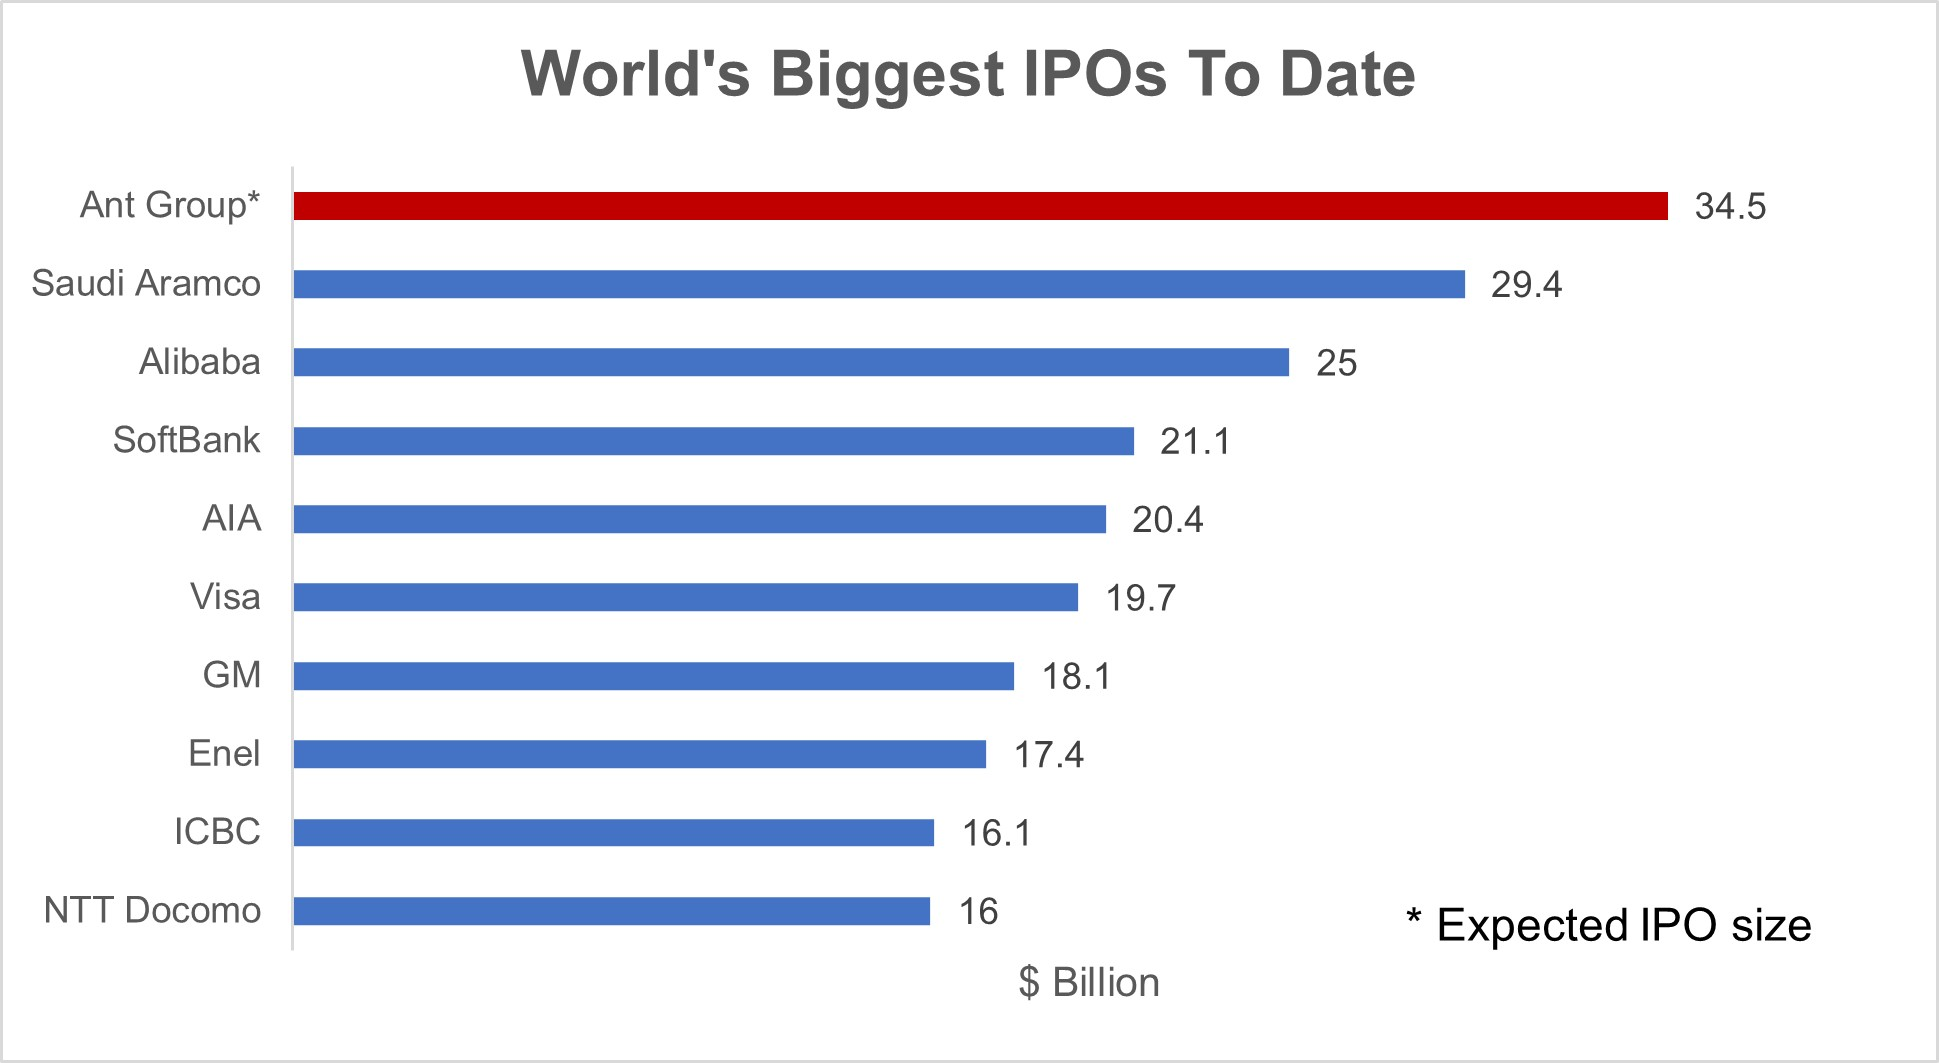 World's Biggest IPOs To Date